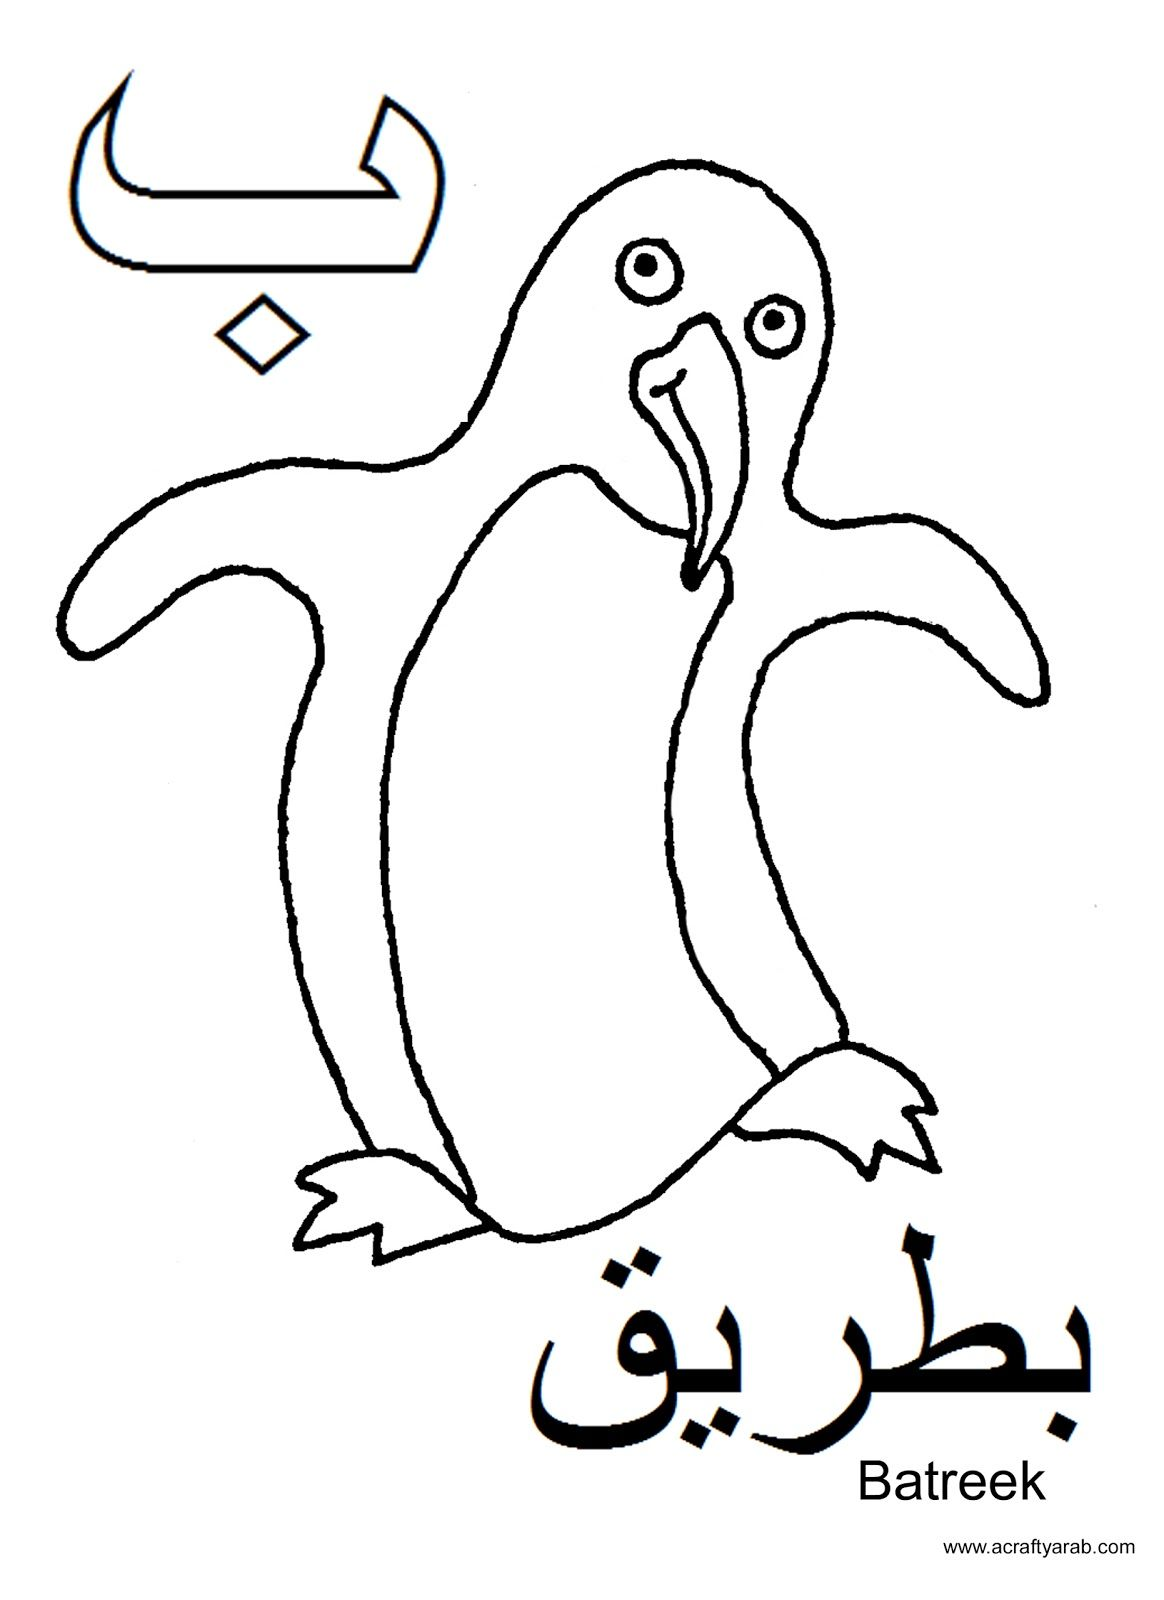 I M Still Continuing To Take The Animals From My Arabic